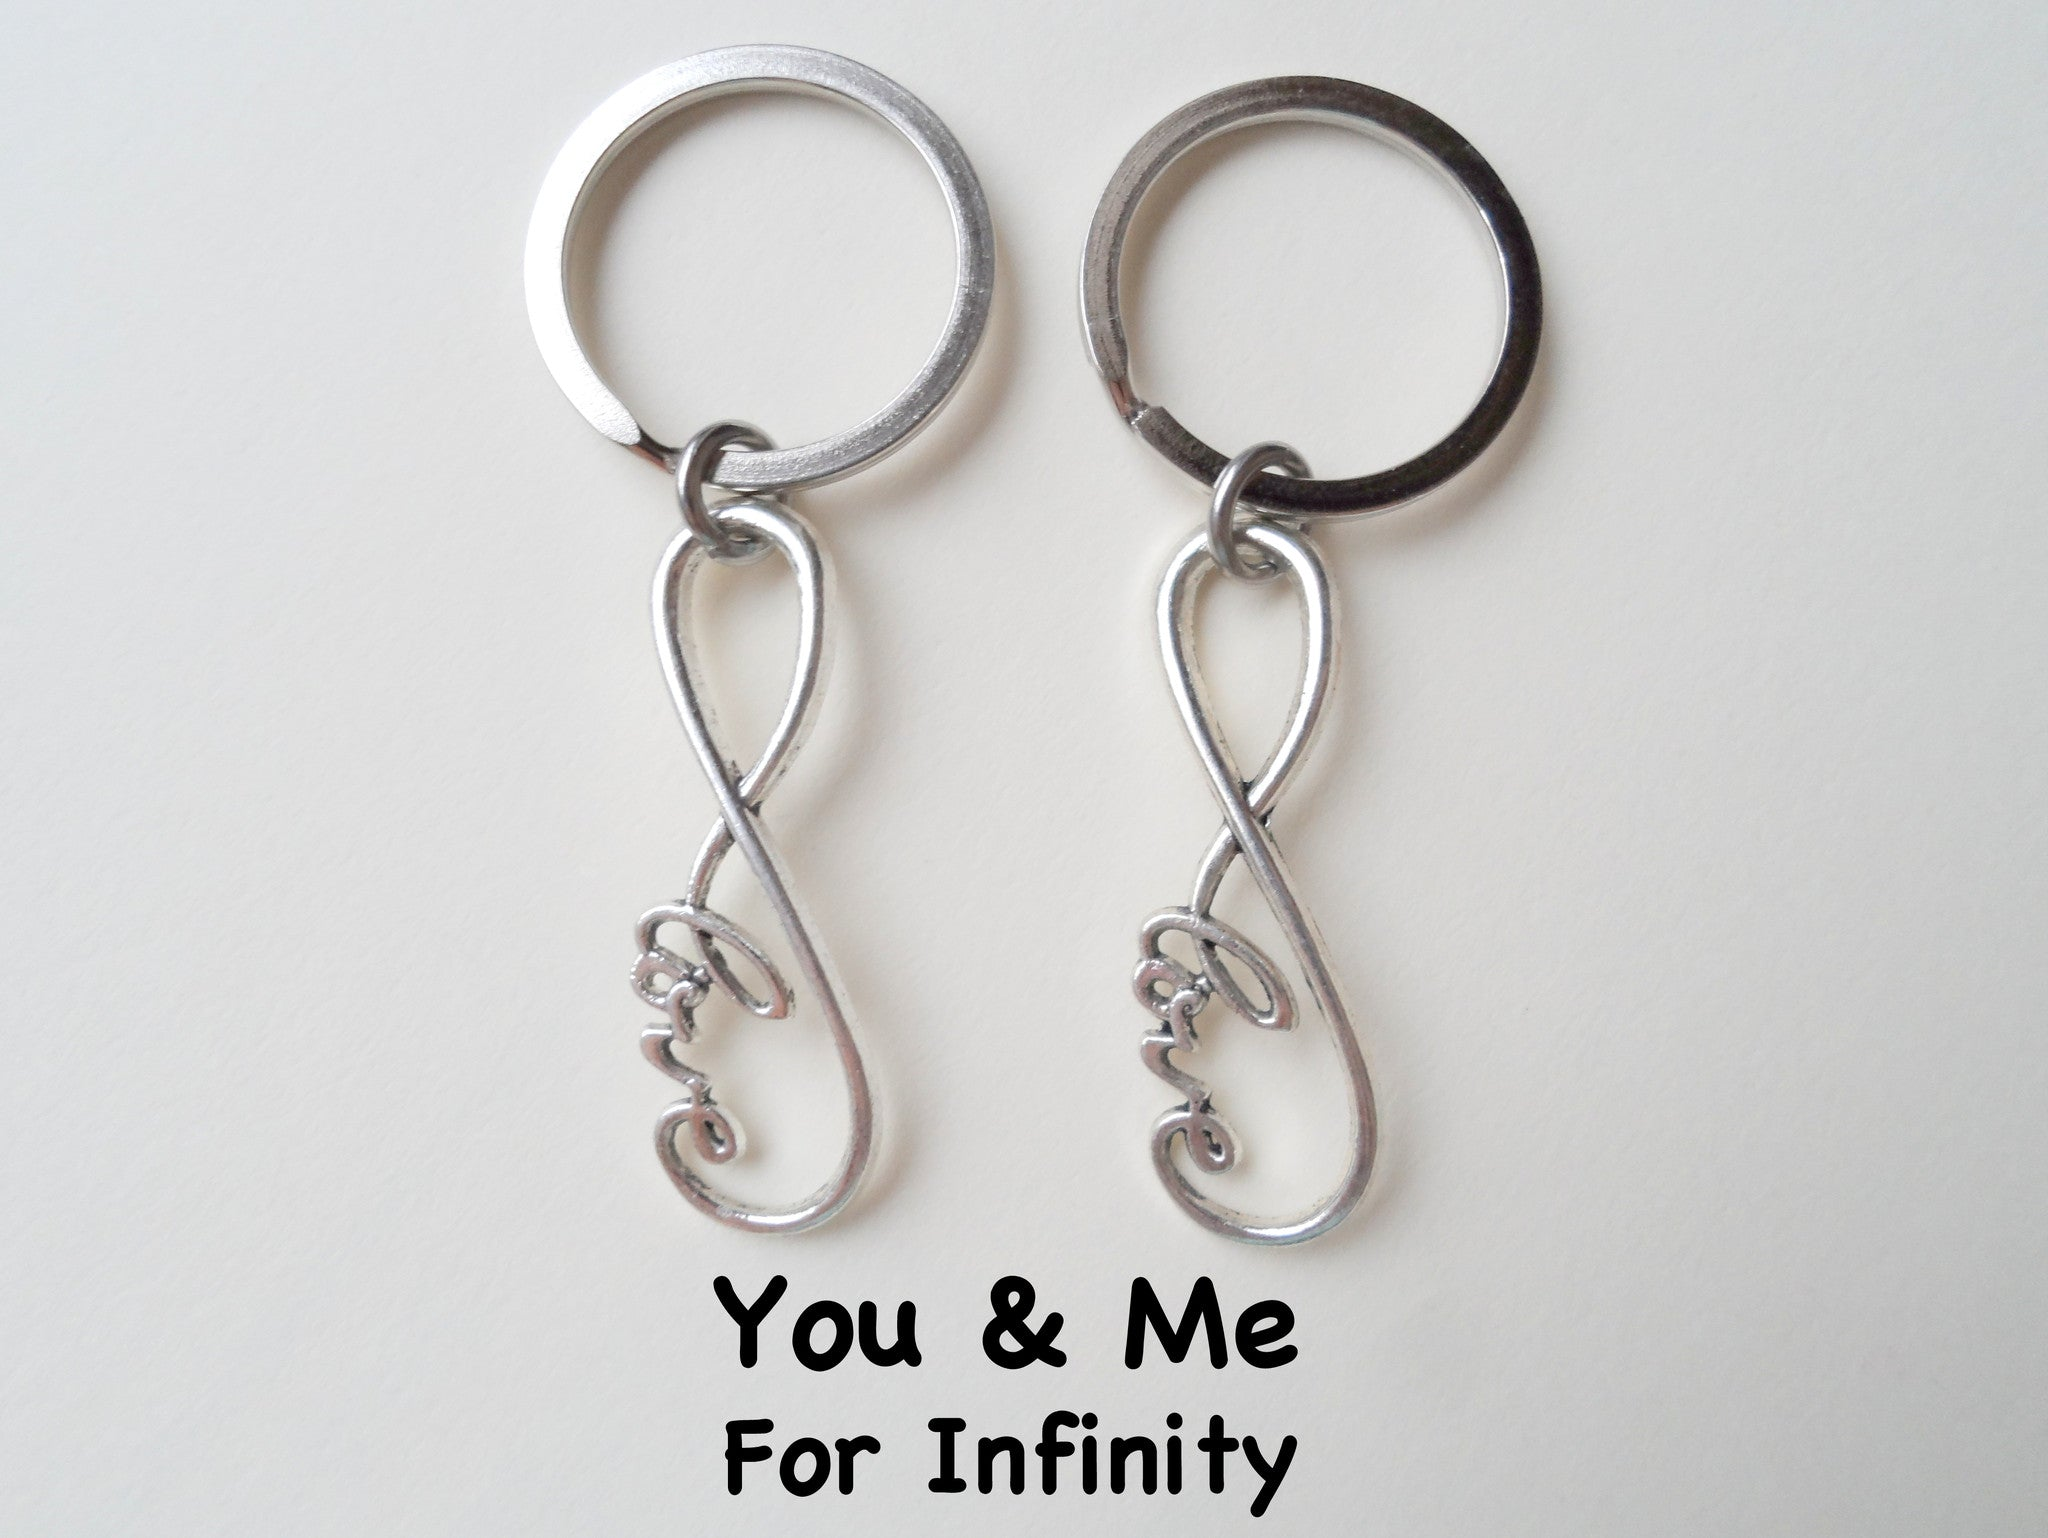 Double keychain set infinity love symbol keychain jewelryeveryday double keychain set infinity love symbol keychain you and me for infinity couples keychain biocorpaavc Gallery